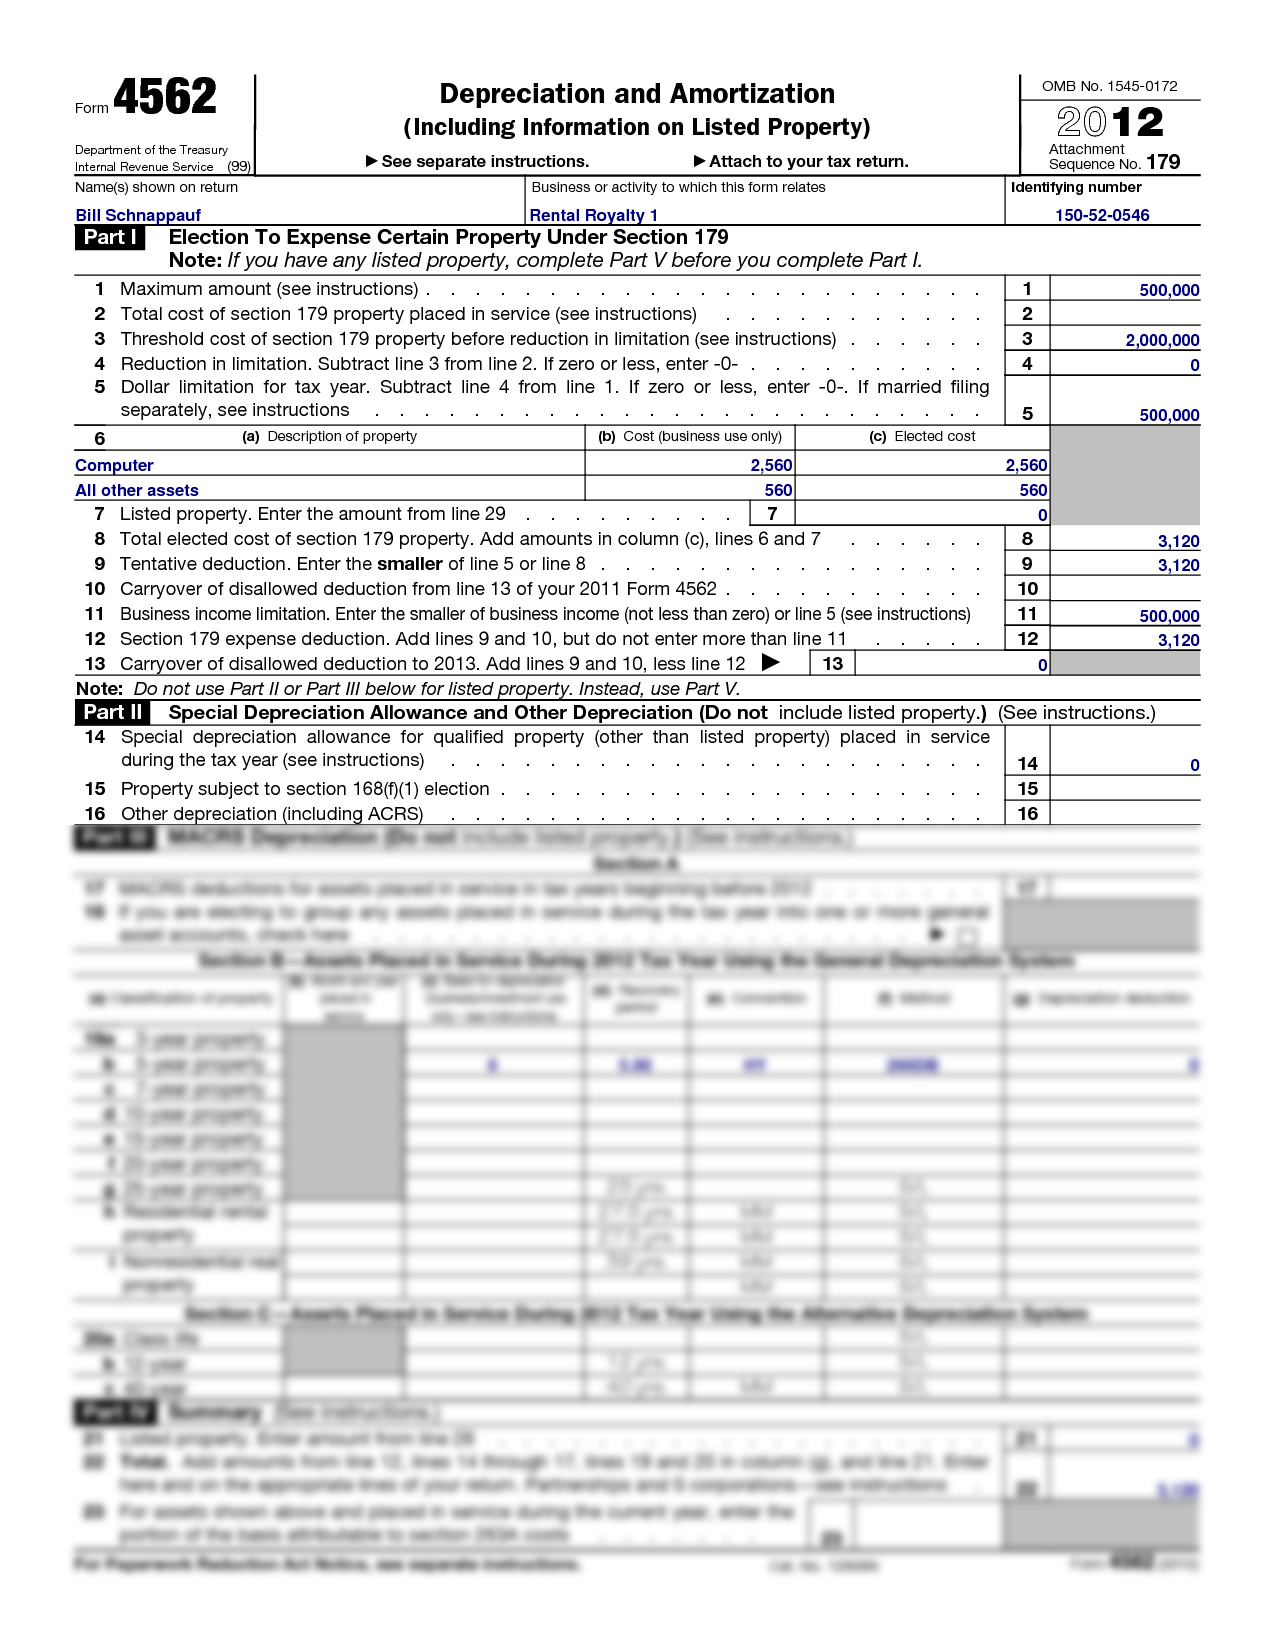 schnappauf f 4562page0 Top Result 70 Inspirational Irs form 8889 Examples Photos 2018 Pkt6